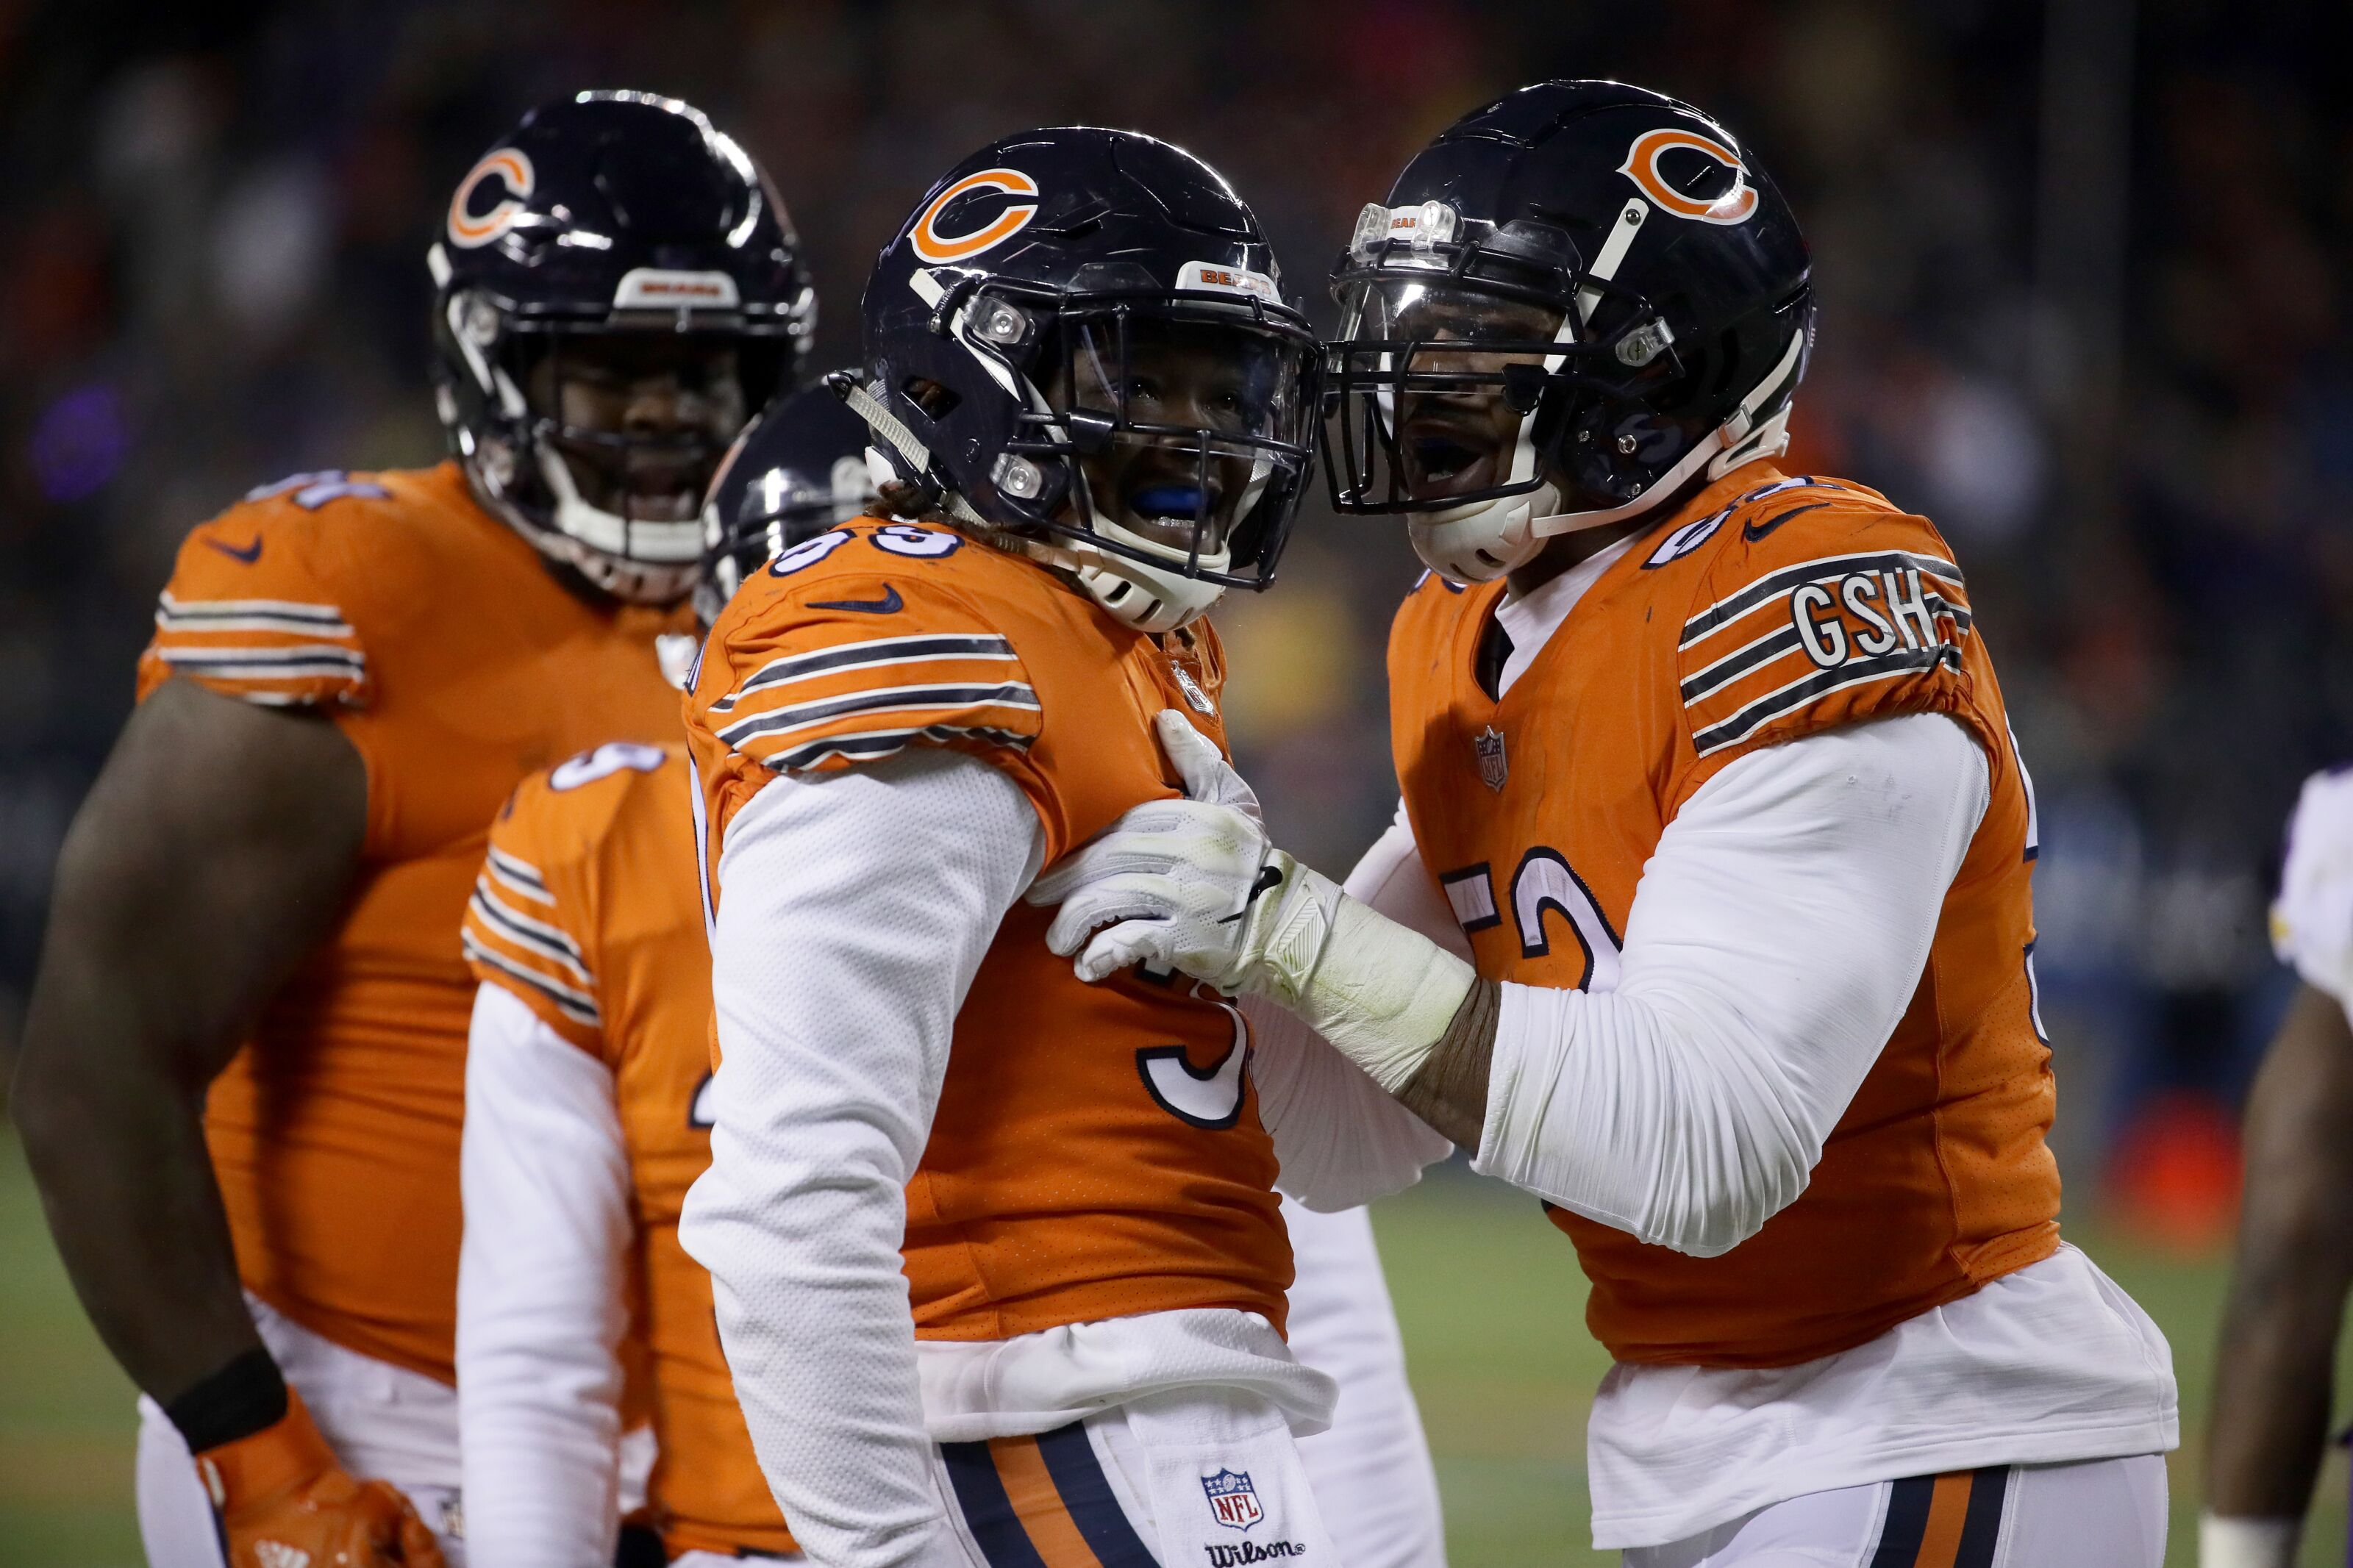 Could the Chicago Bears win the Super Bowl?